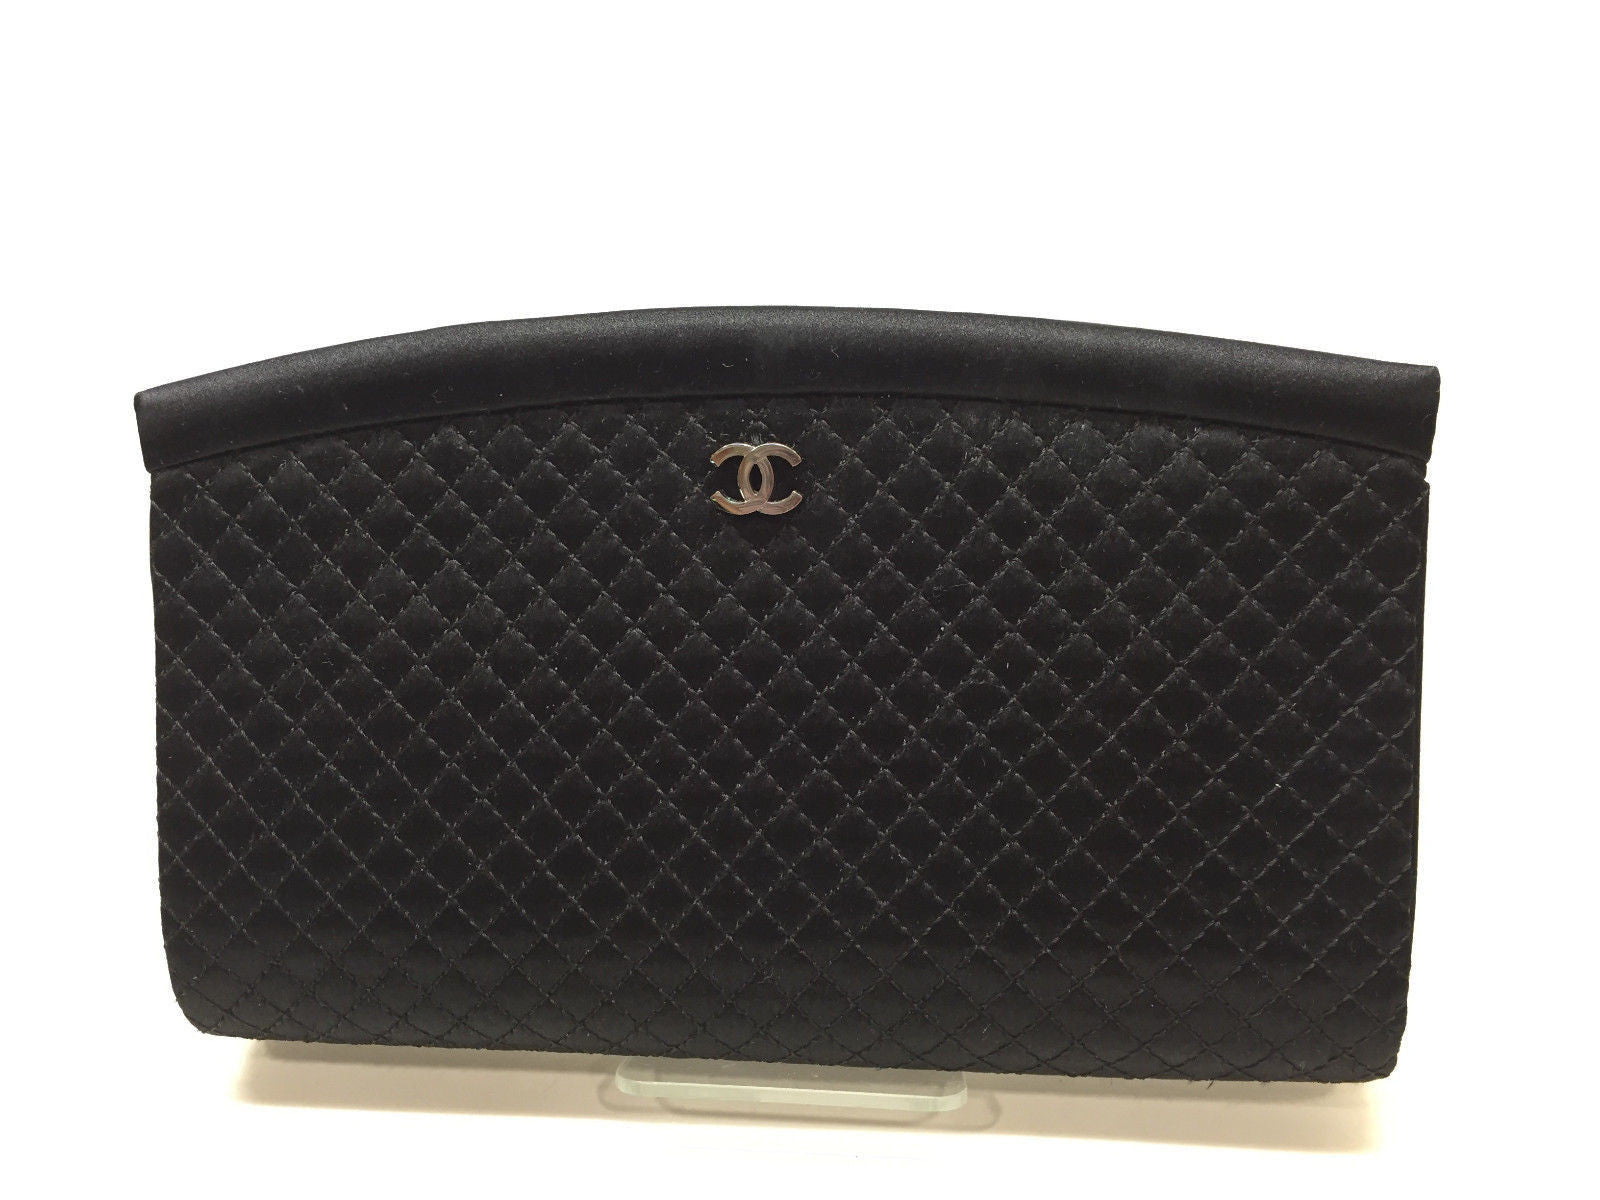 CHANEL Autumn '06 Black Micro-Quilted Silk Kisslock Frame Evening ... : chanel quilted clutch bag - Adamdwight.com